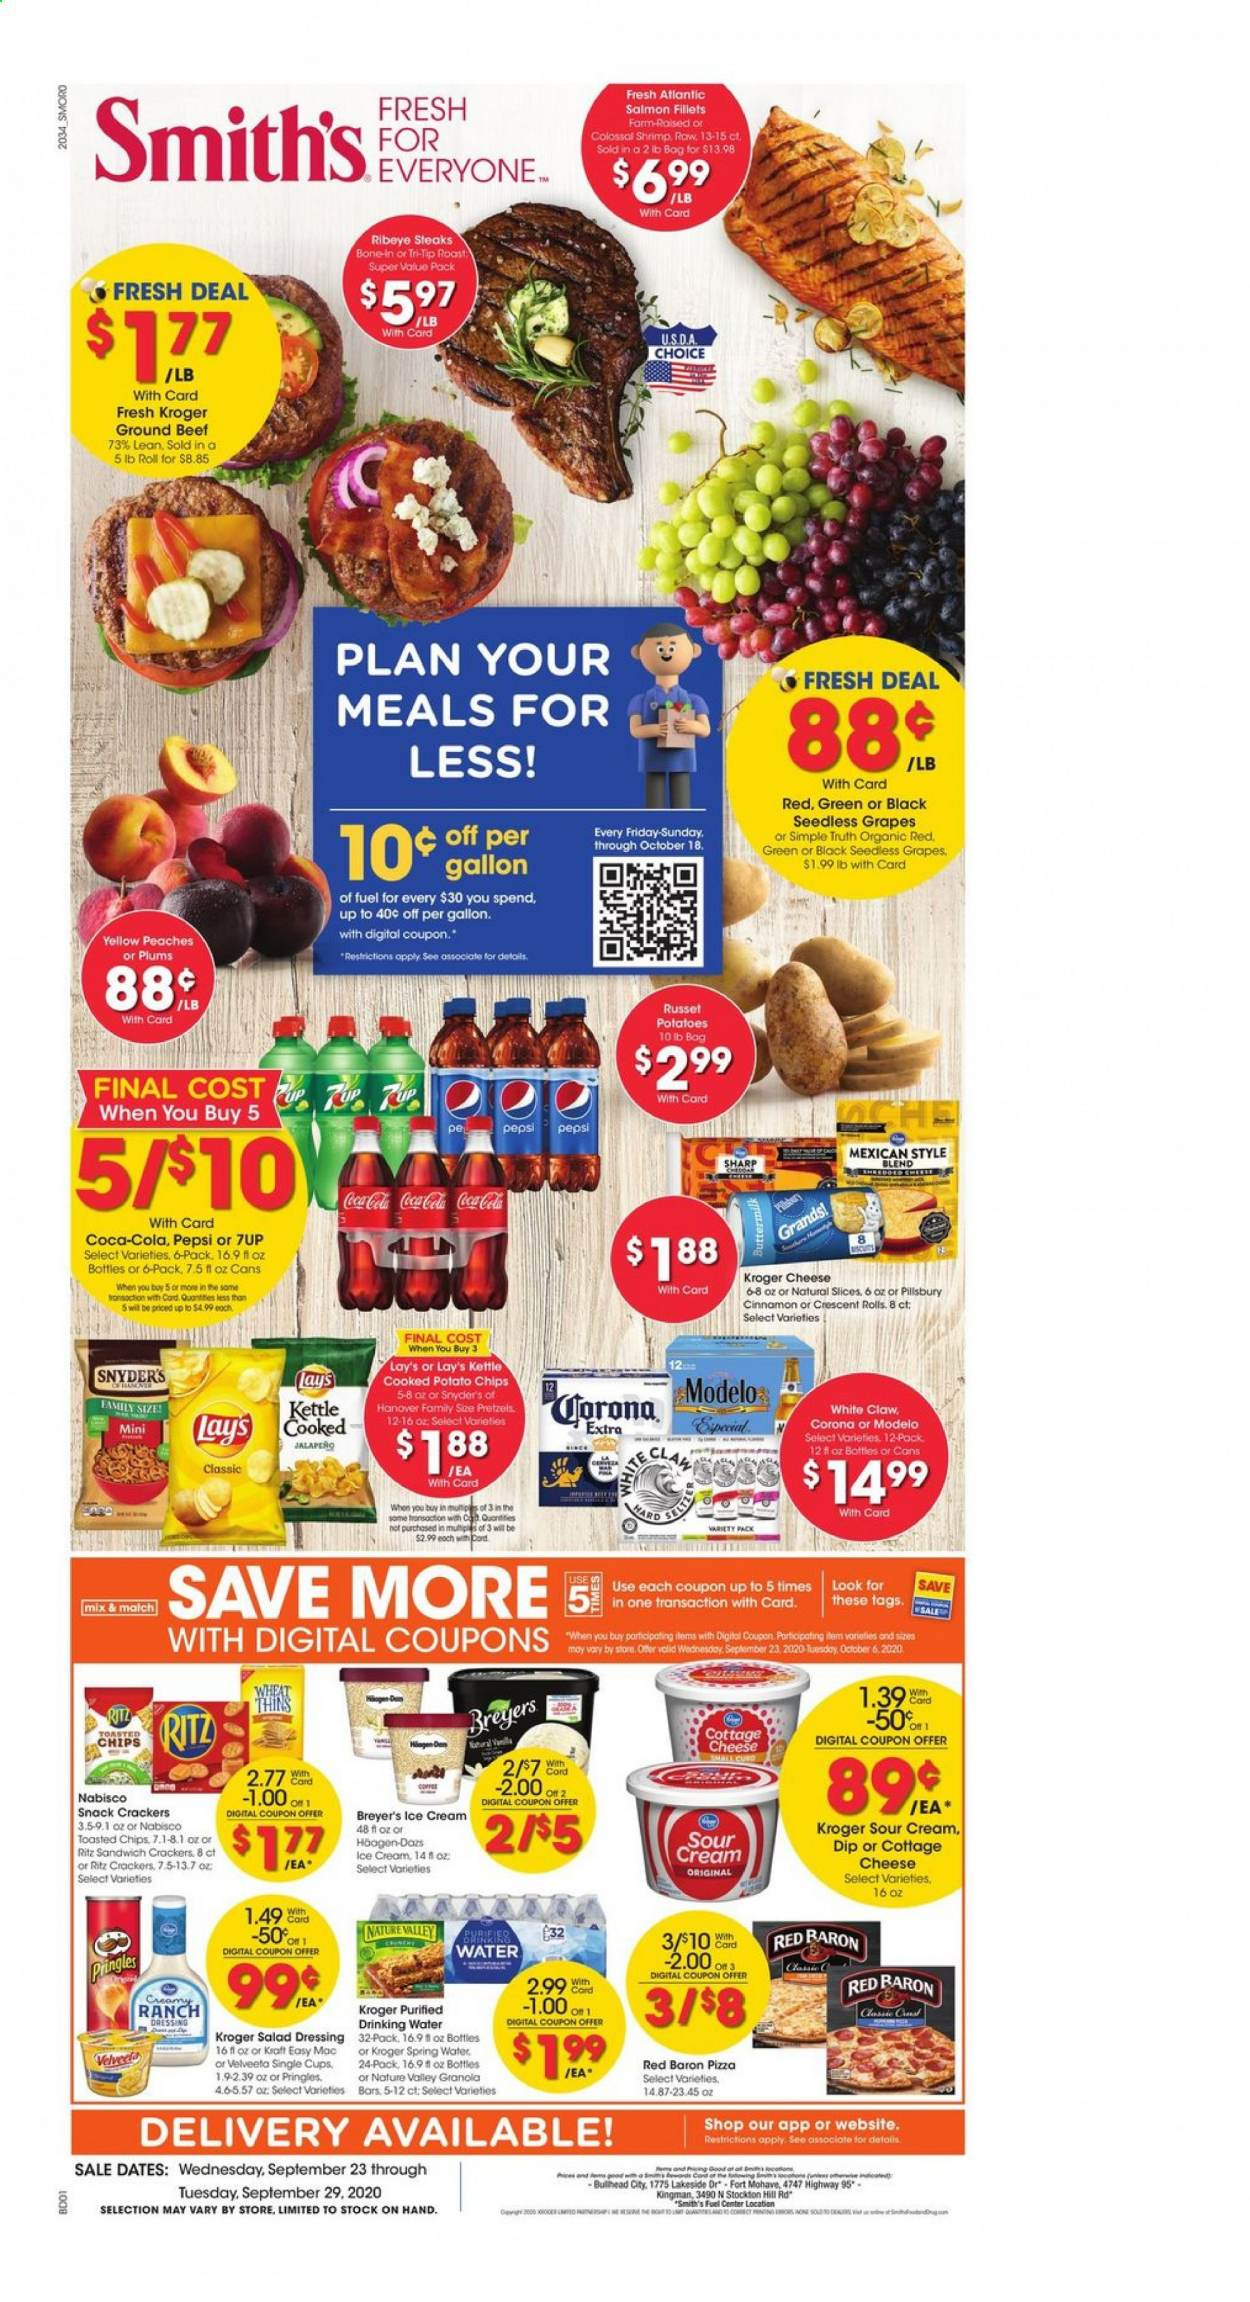 Smith's Flyer - 09.23.2020 - 09.29.2020 - Sales products - bag, beef meat, cerveza, coca-cola, cottage cheese, crackers, dates, fuel, granola, grapes, ground beef, ranch dressing, russet potatoes, salad dressing, salmon, seedless grapes, sharp, shrimp, sour cream, spring water, ice cream, pizza, plums, potato chips, potatoes, pretzels, pringles, peaches, pepsi, organic, chips, drinking water, cheese, dressing, sandwich, snack, breyer, lay's, ritz, salad, corona, jalapeno, roast, shrimps, kettle, peache, spring. Page 1.